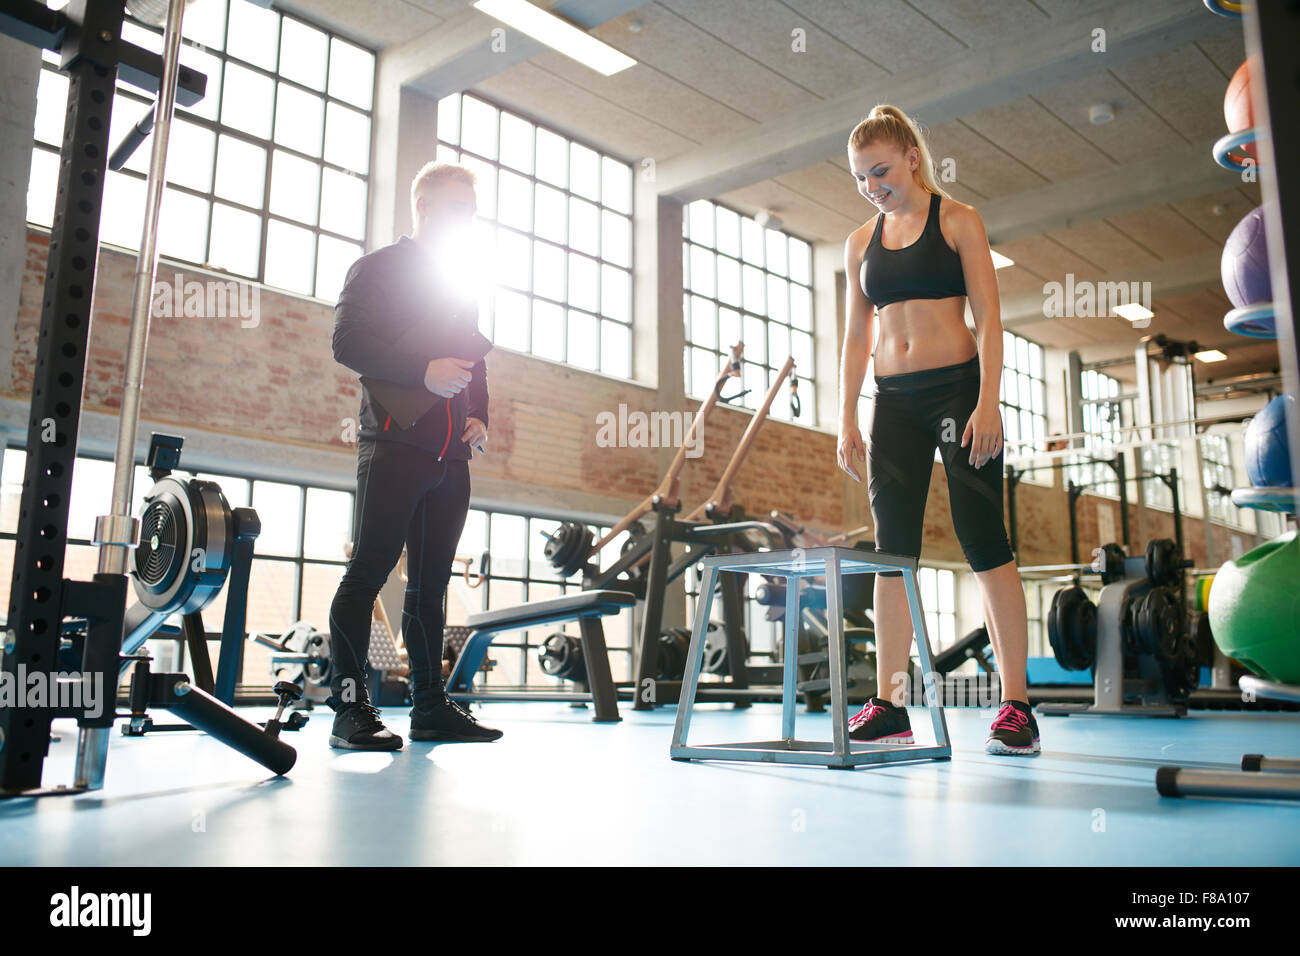 Shot of a young woman exercising in the gym with the supervision of a personal trainer. - Stock Image